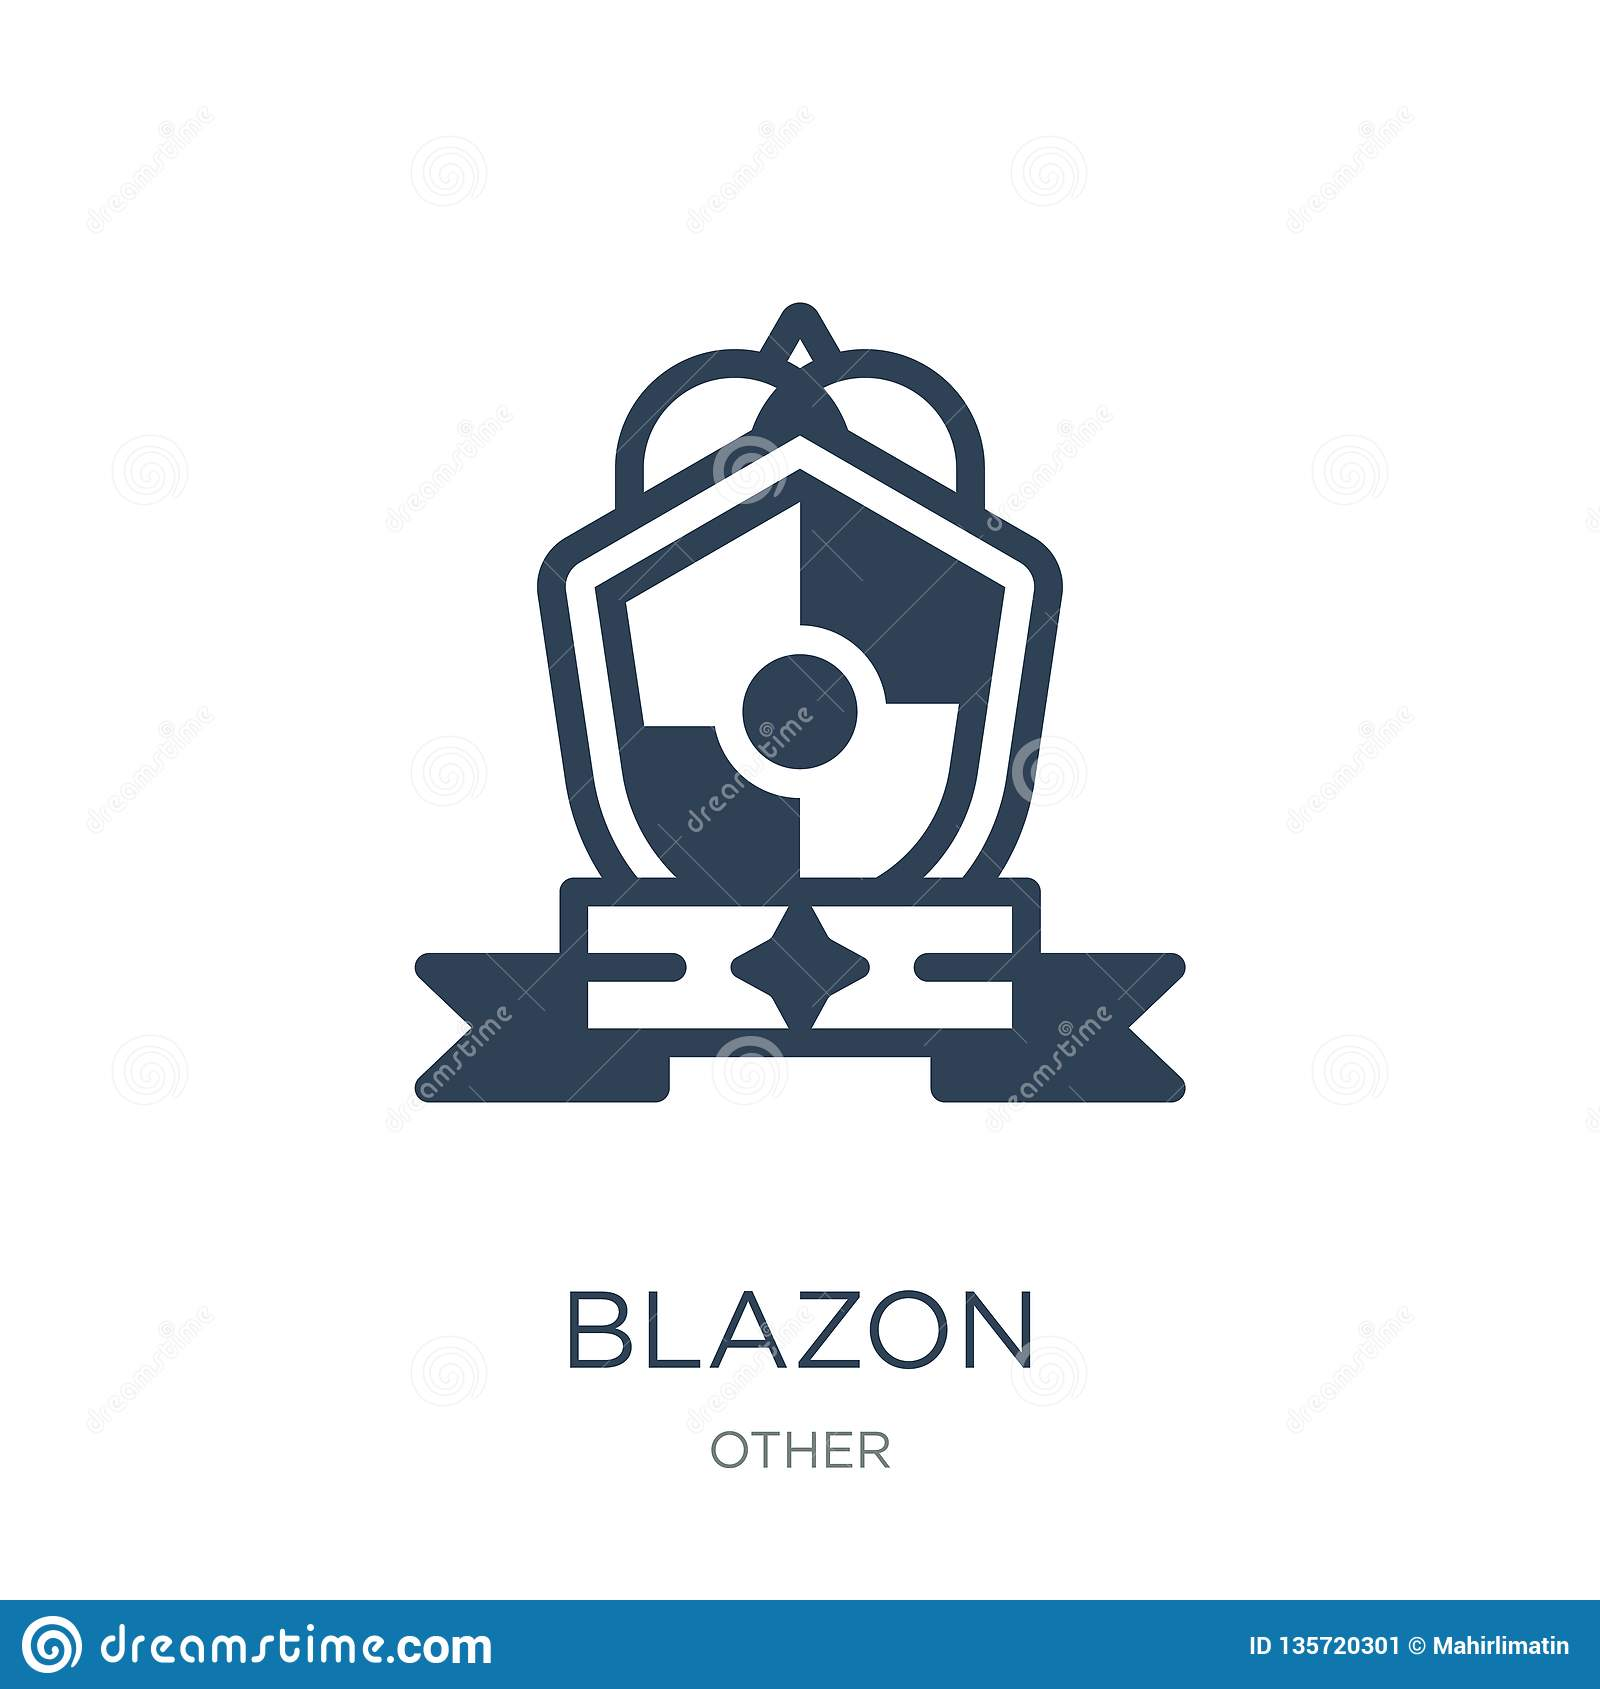 blazon icon in trendy design style. blazon icon isolated on white background. blazon vector icon simple and modern flat symbol for